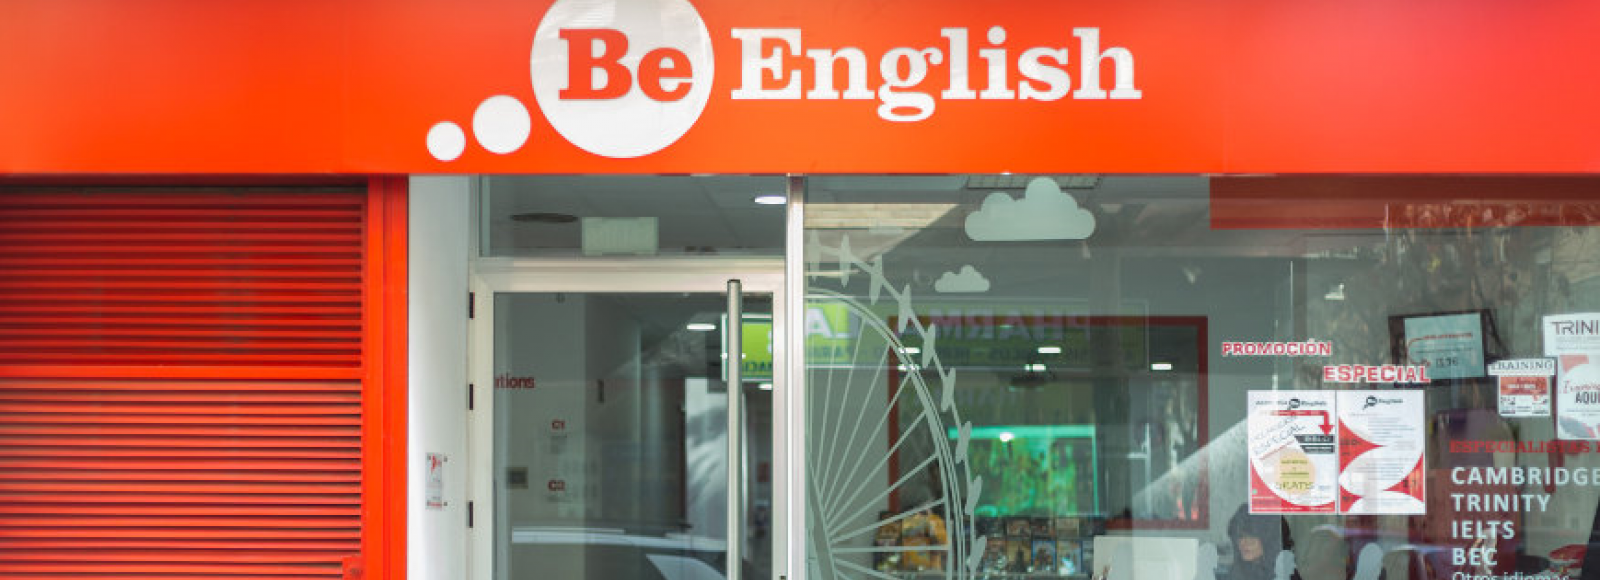 Be English - Academia de Inglés en Granada